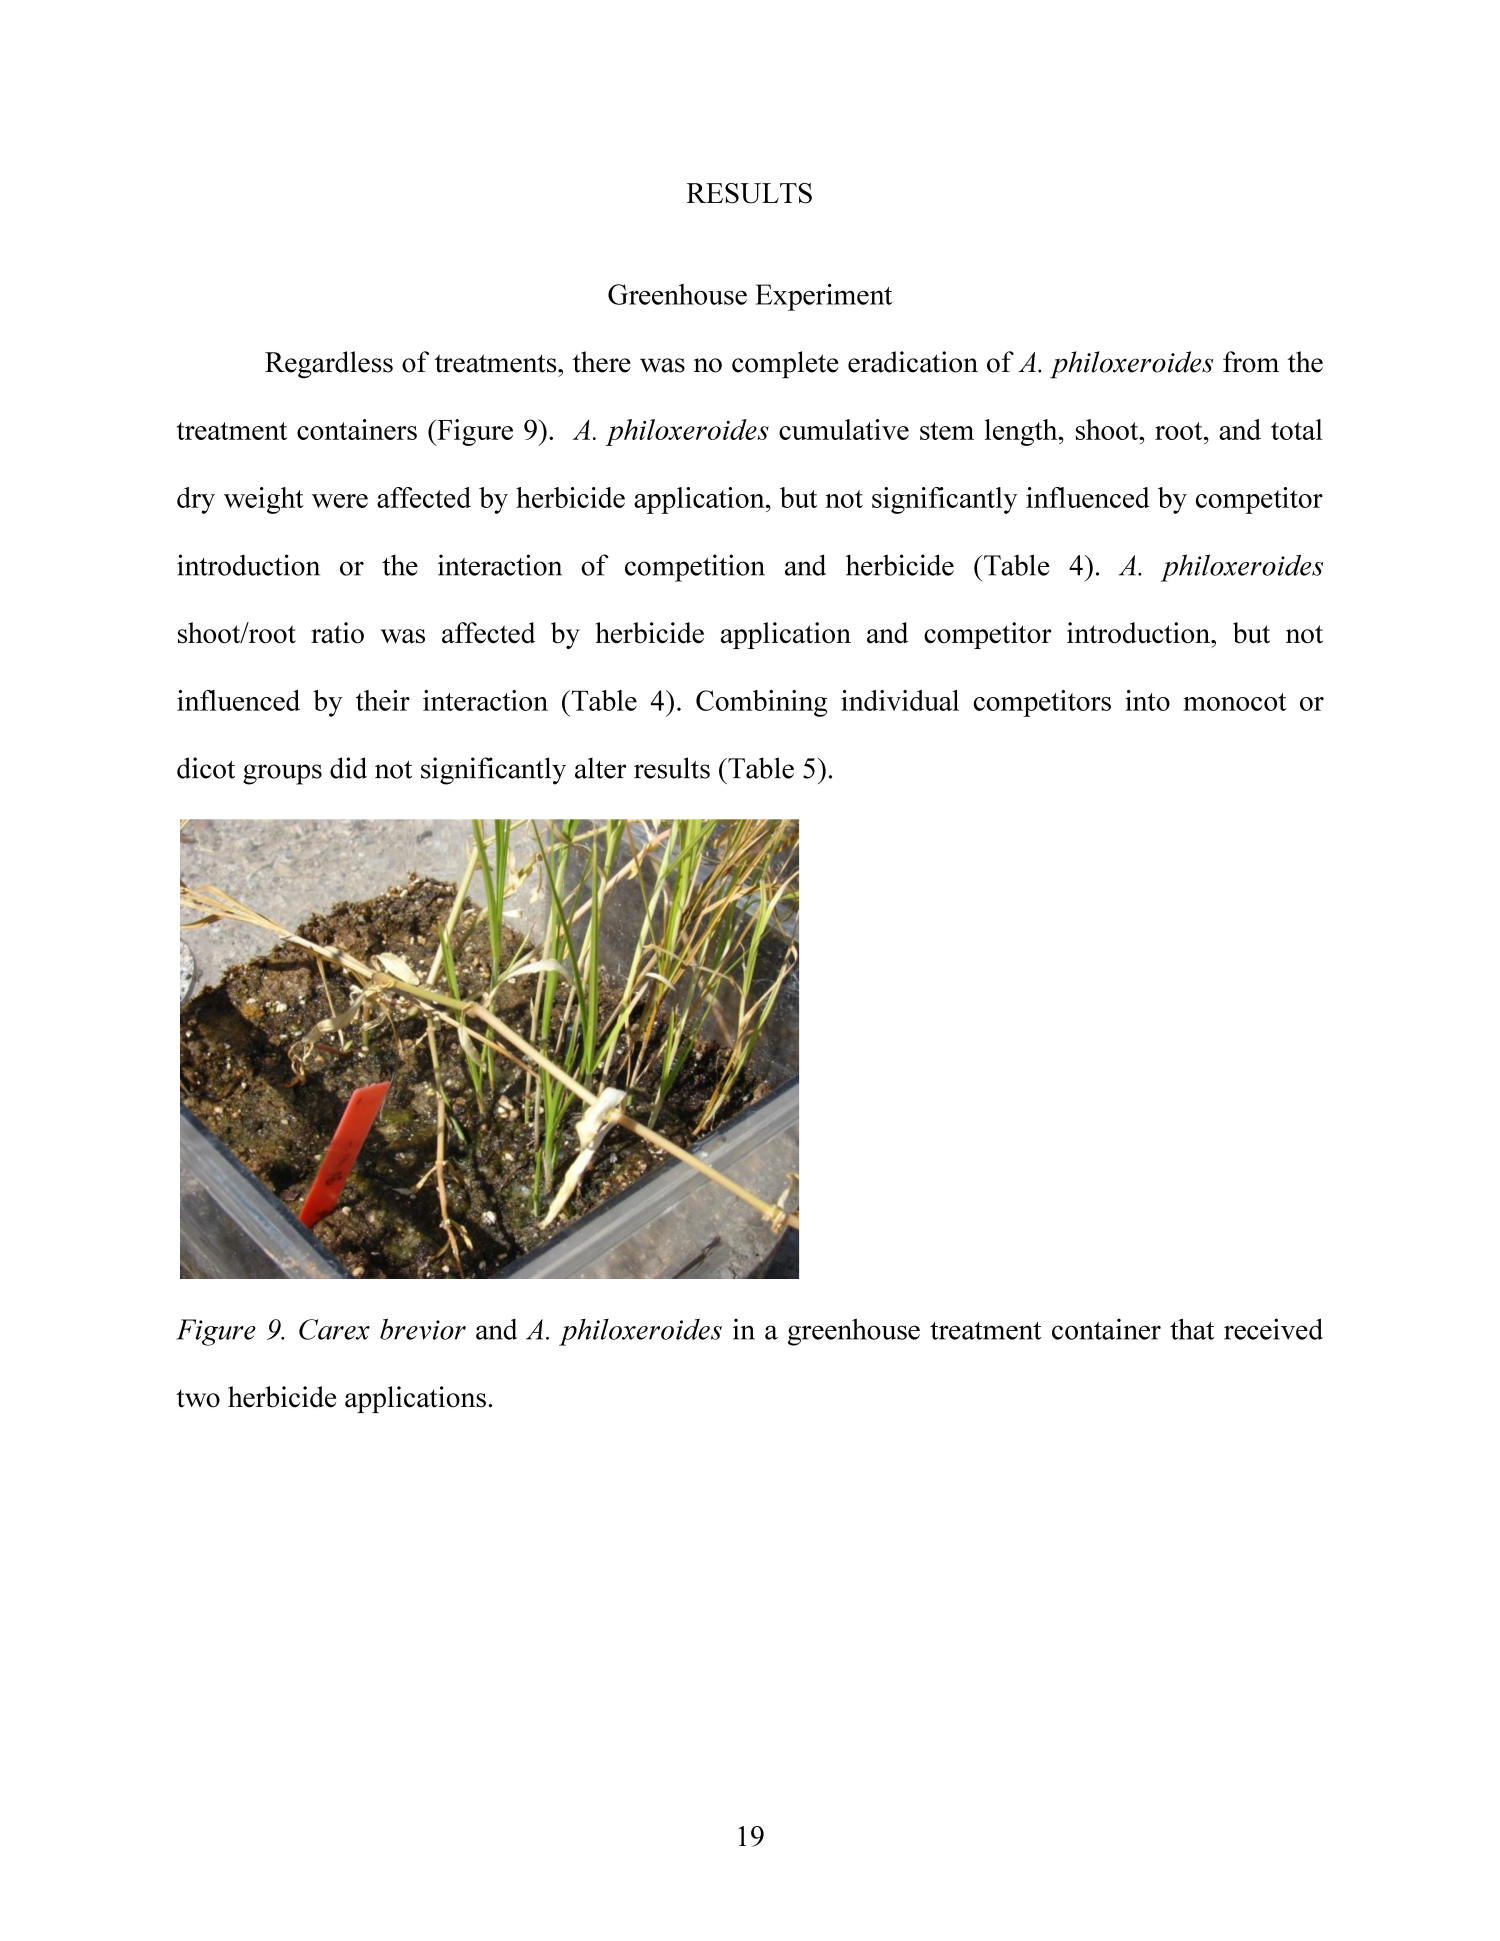 Integrating Selective Herbicide and Native Plant Restoration to Control Alternanthera philoxeroides (Alligator Weed)                                                                                                      19